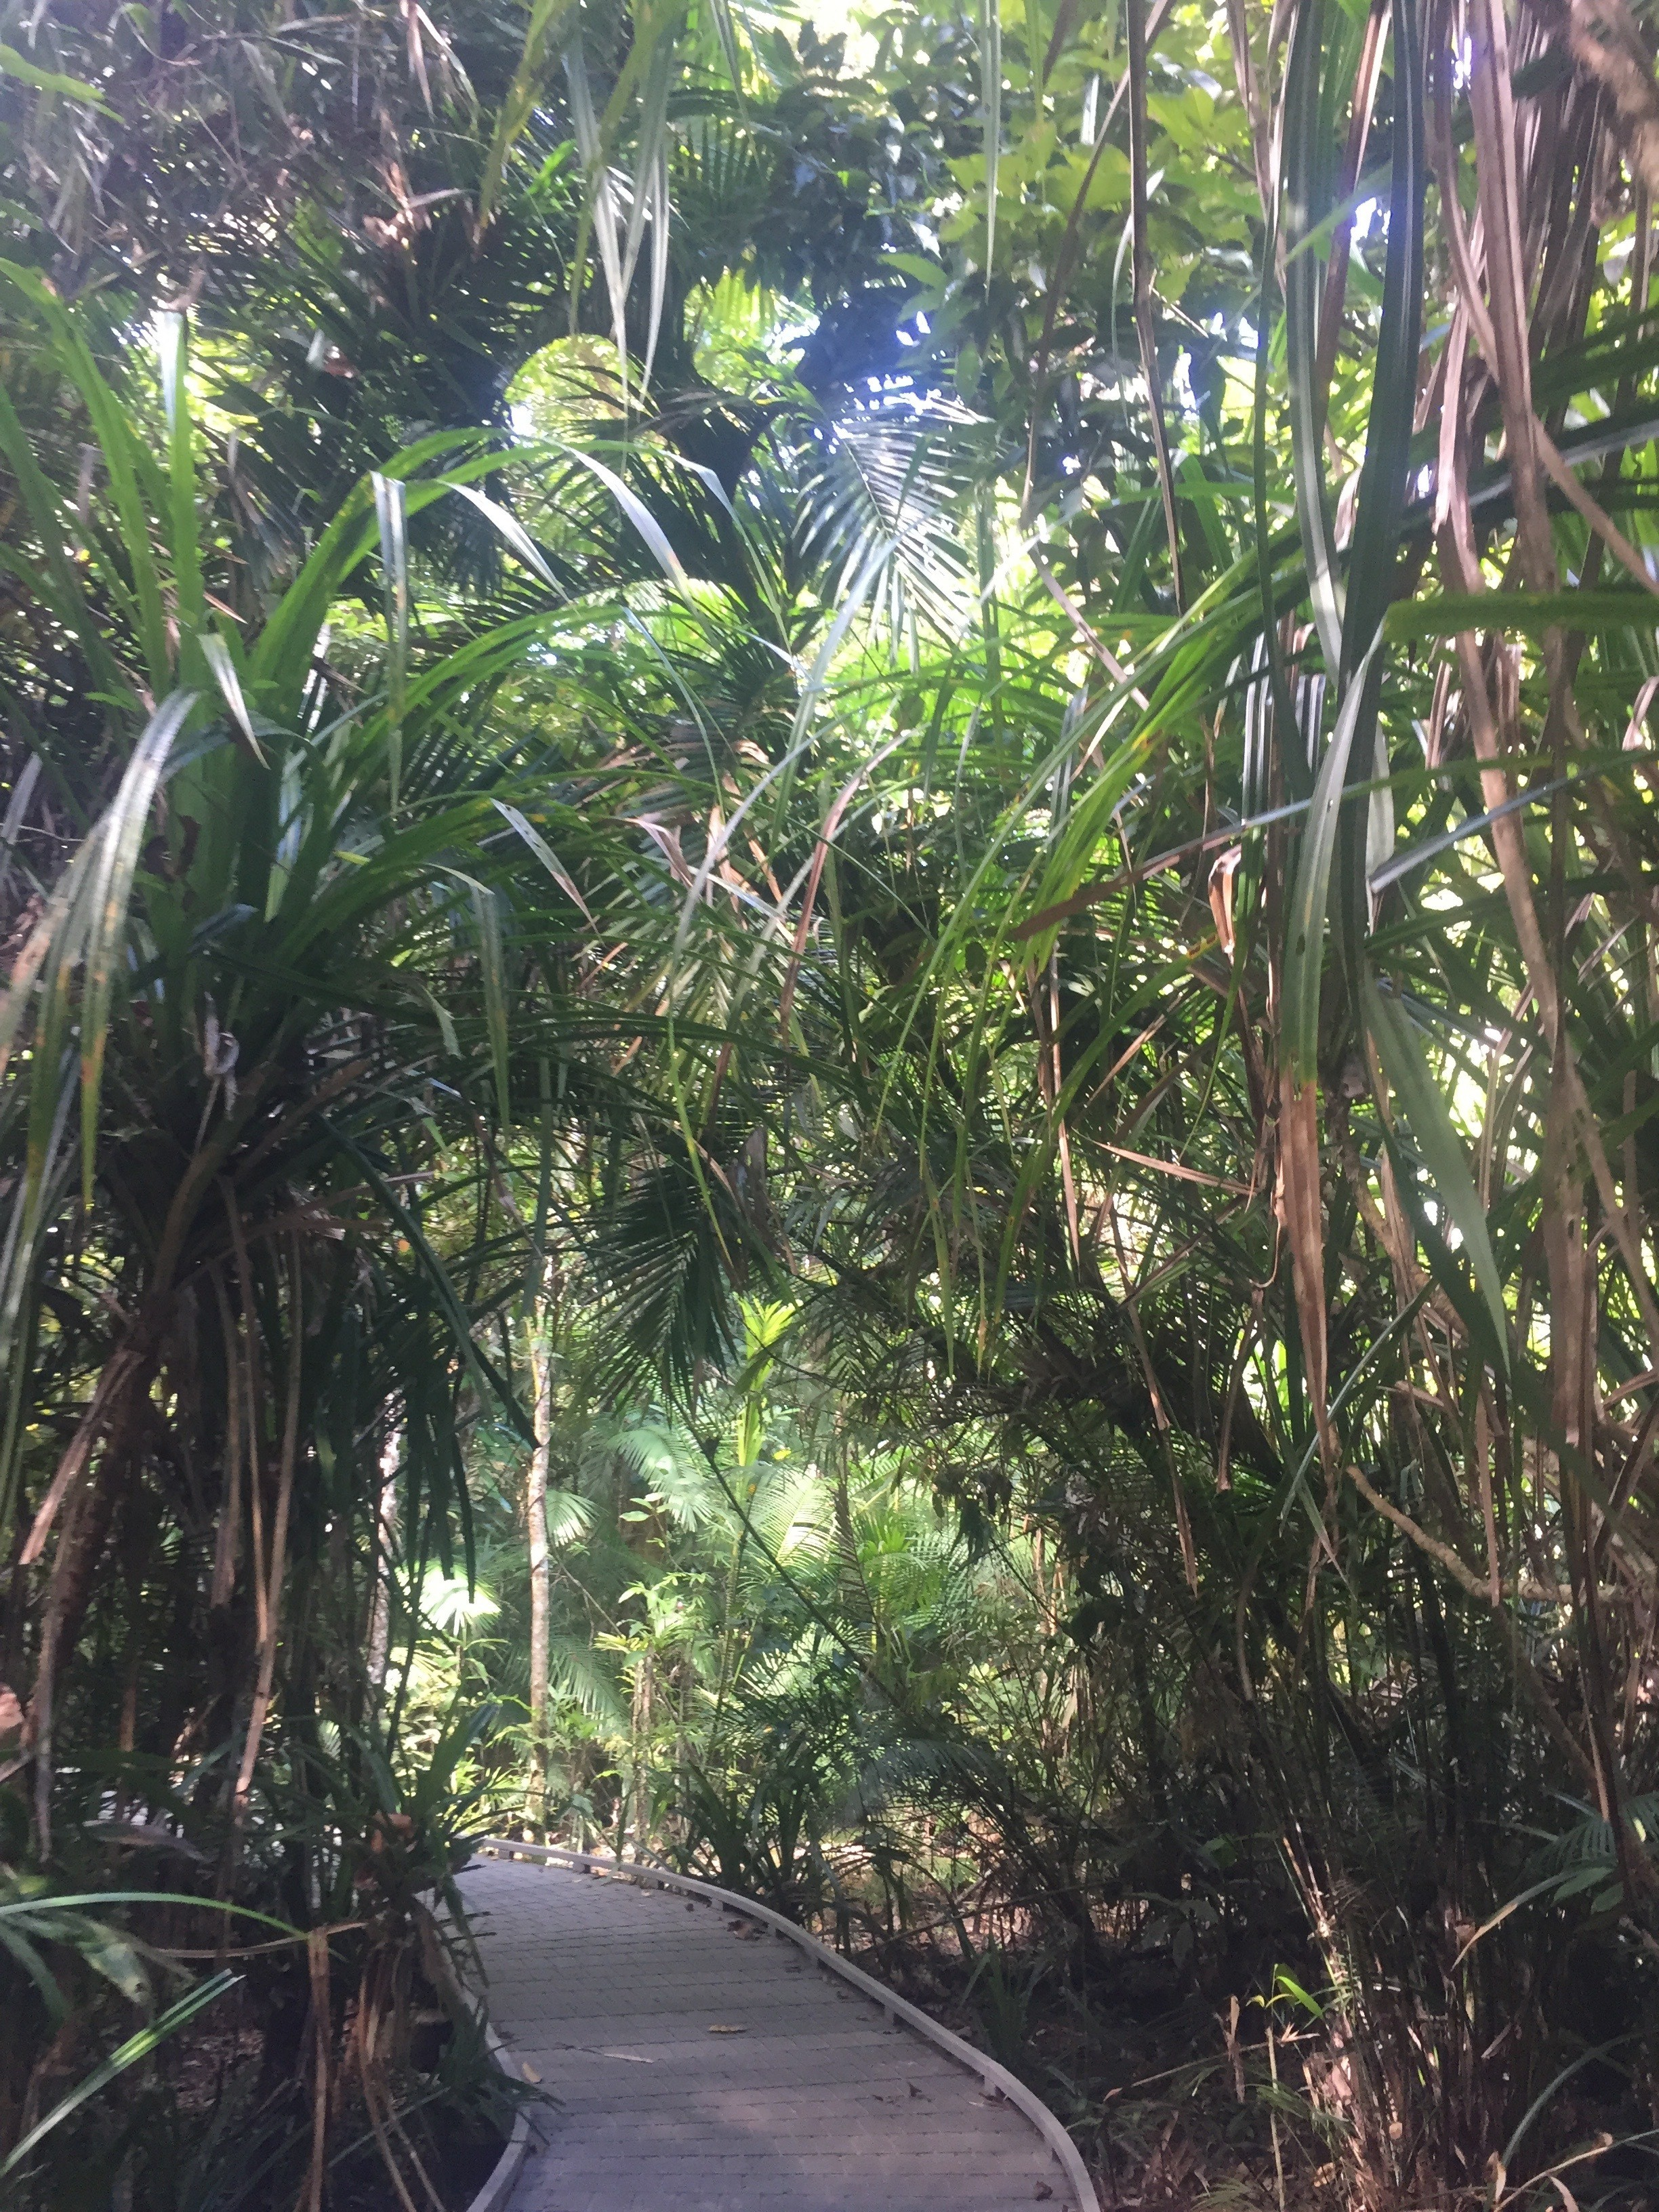 A walking track in the Daintree rainforest